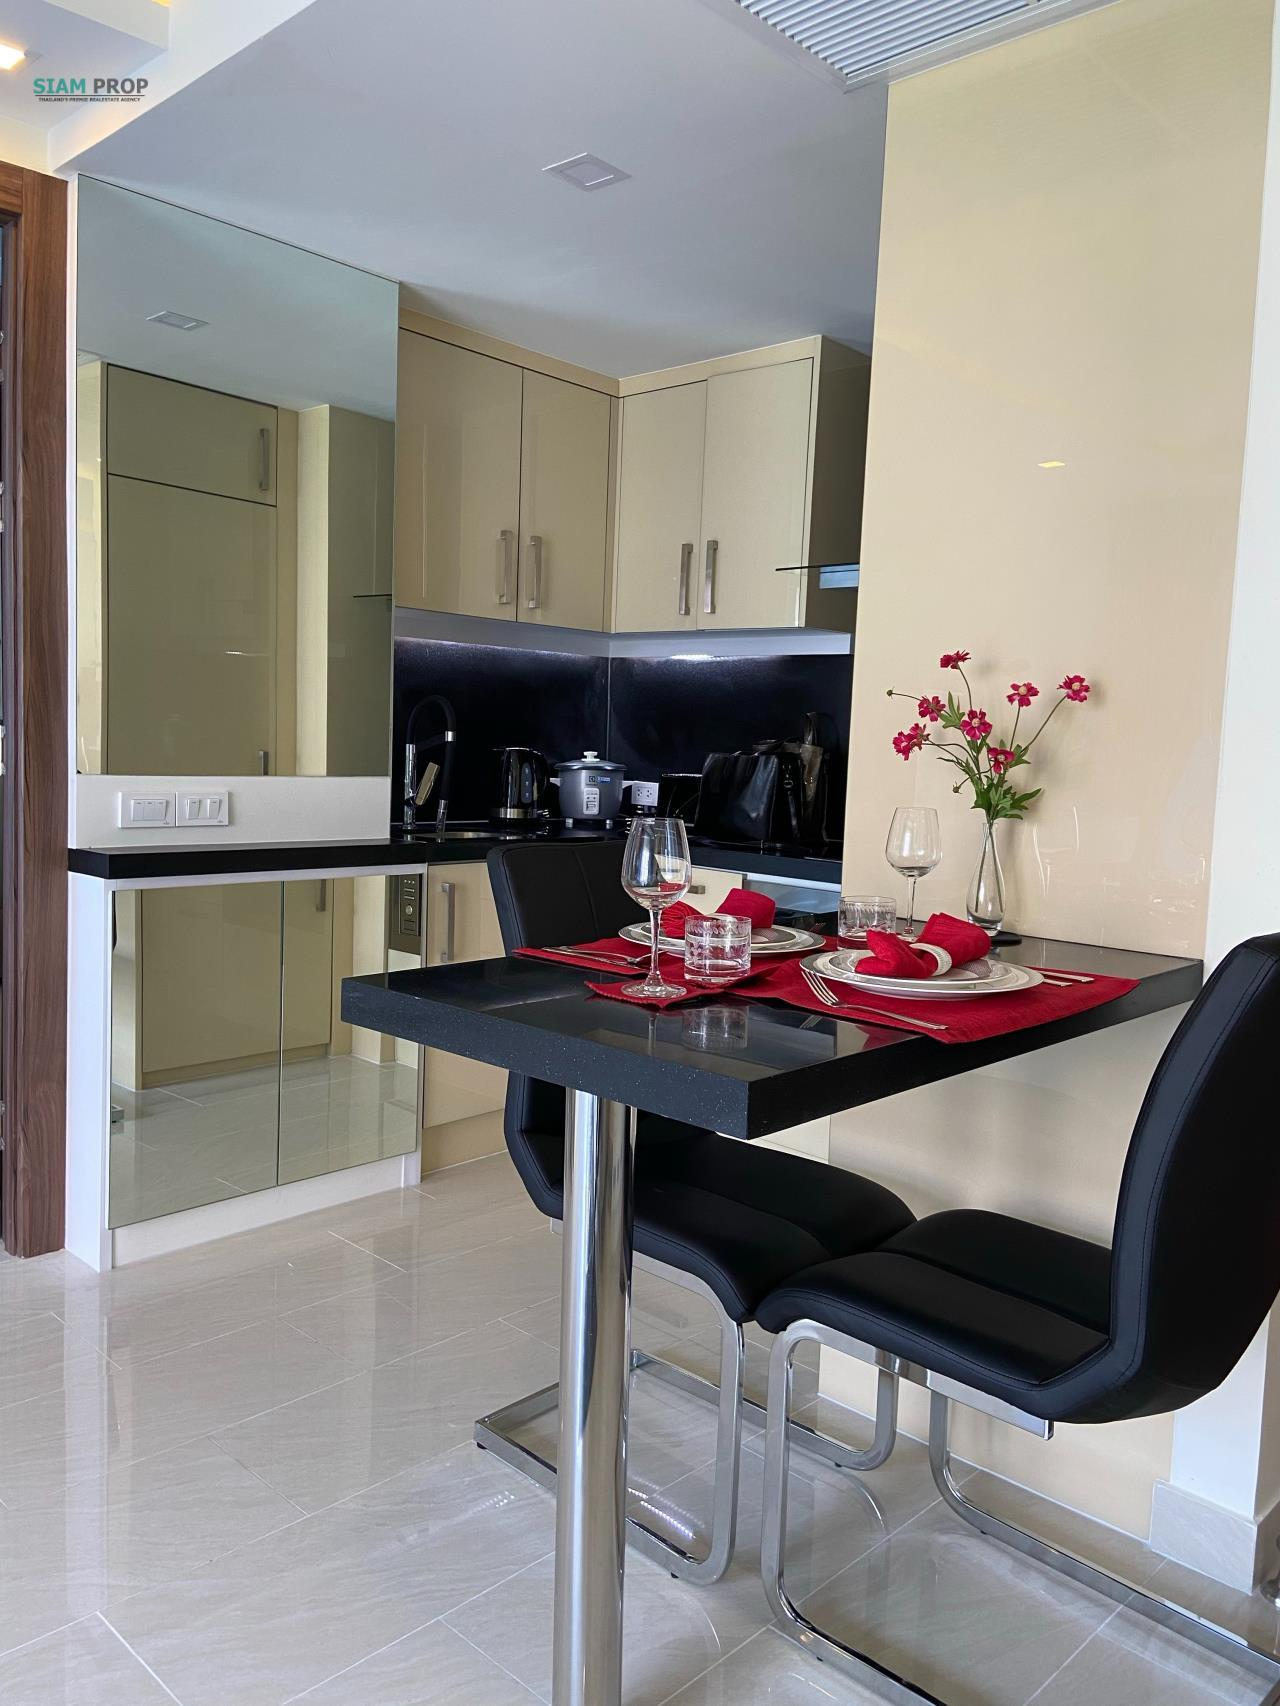 Siam Prop Agency's Brand new 1 bedroom for rent at Grand Avenue Residence 14